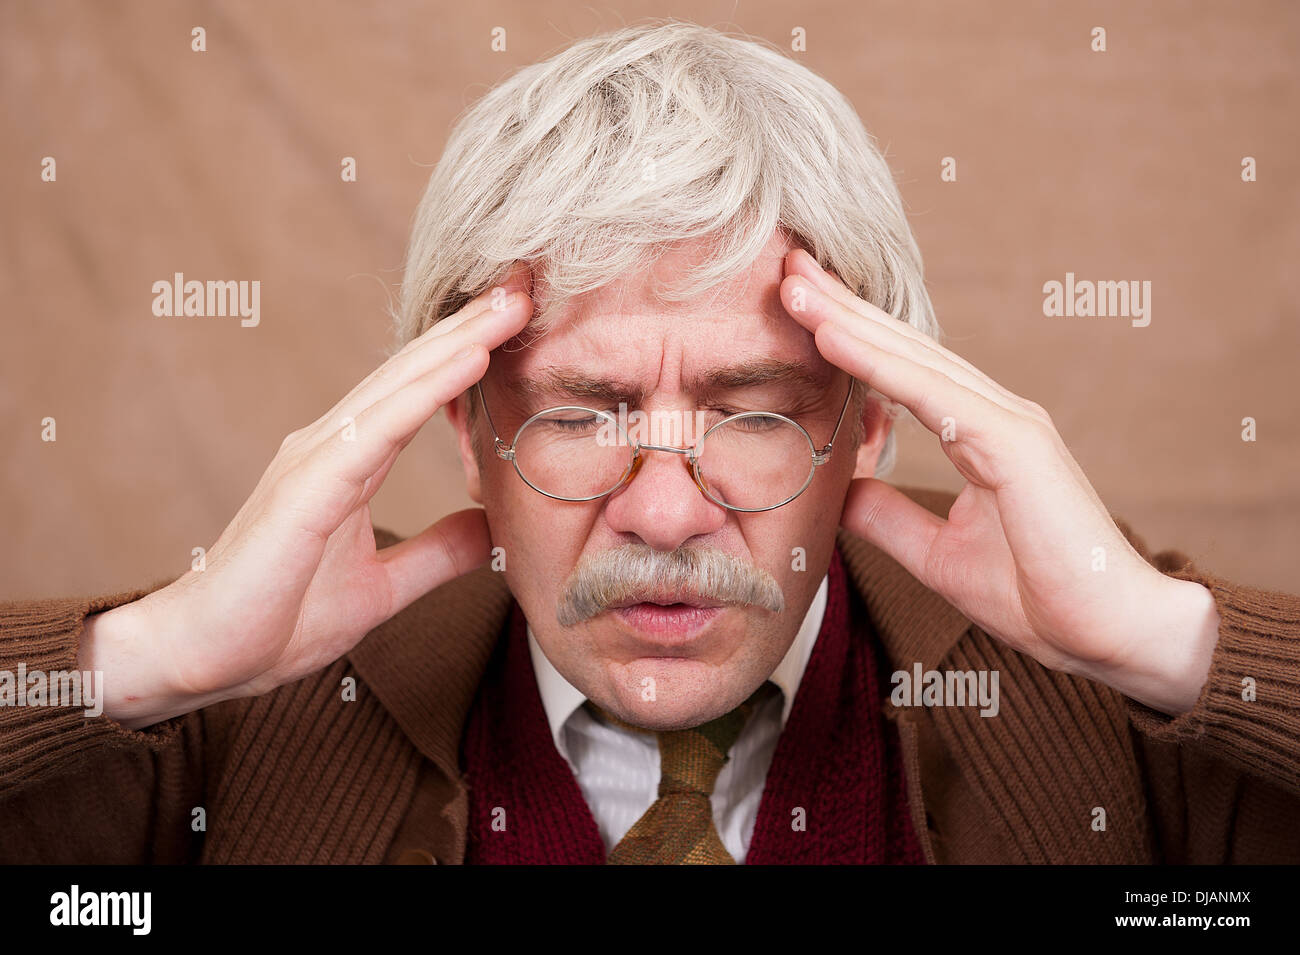 Grey haired old man with his eyes closed and hands to head suffering from a headache. - Stock Image